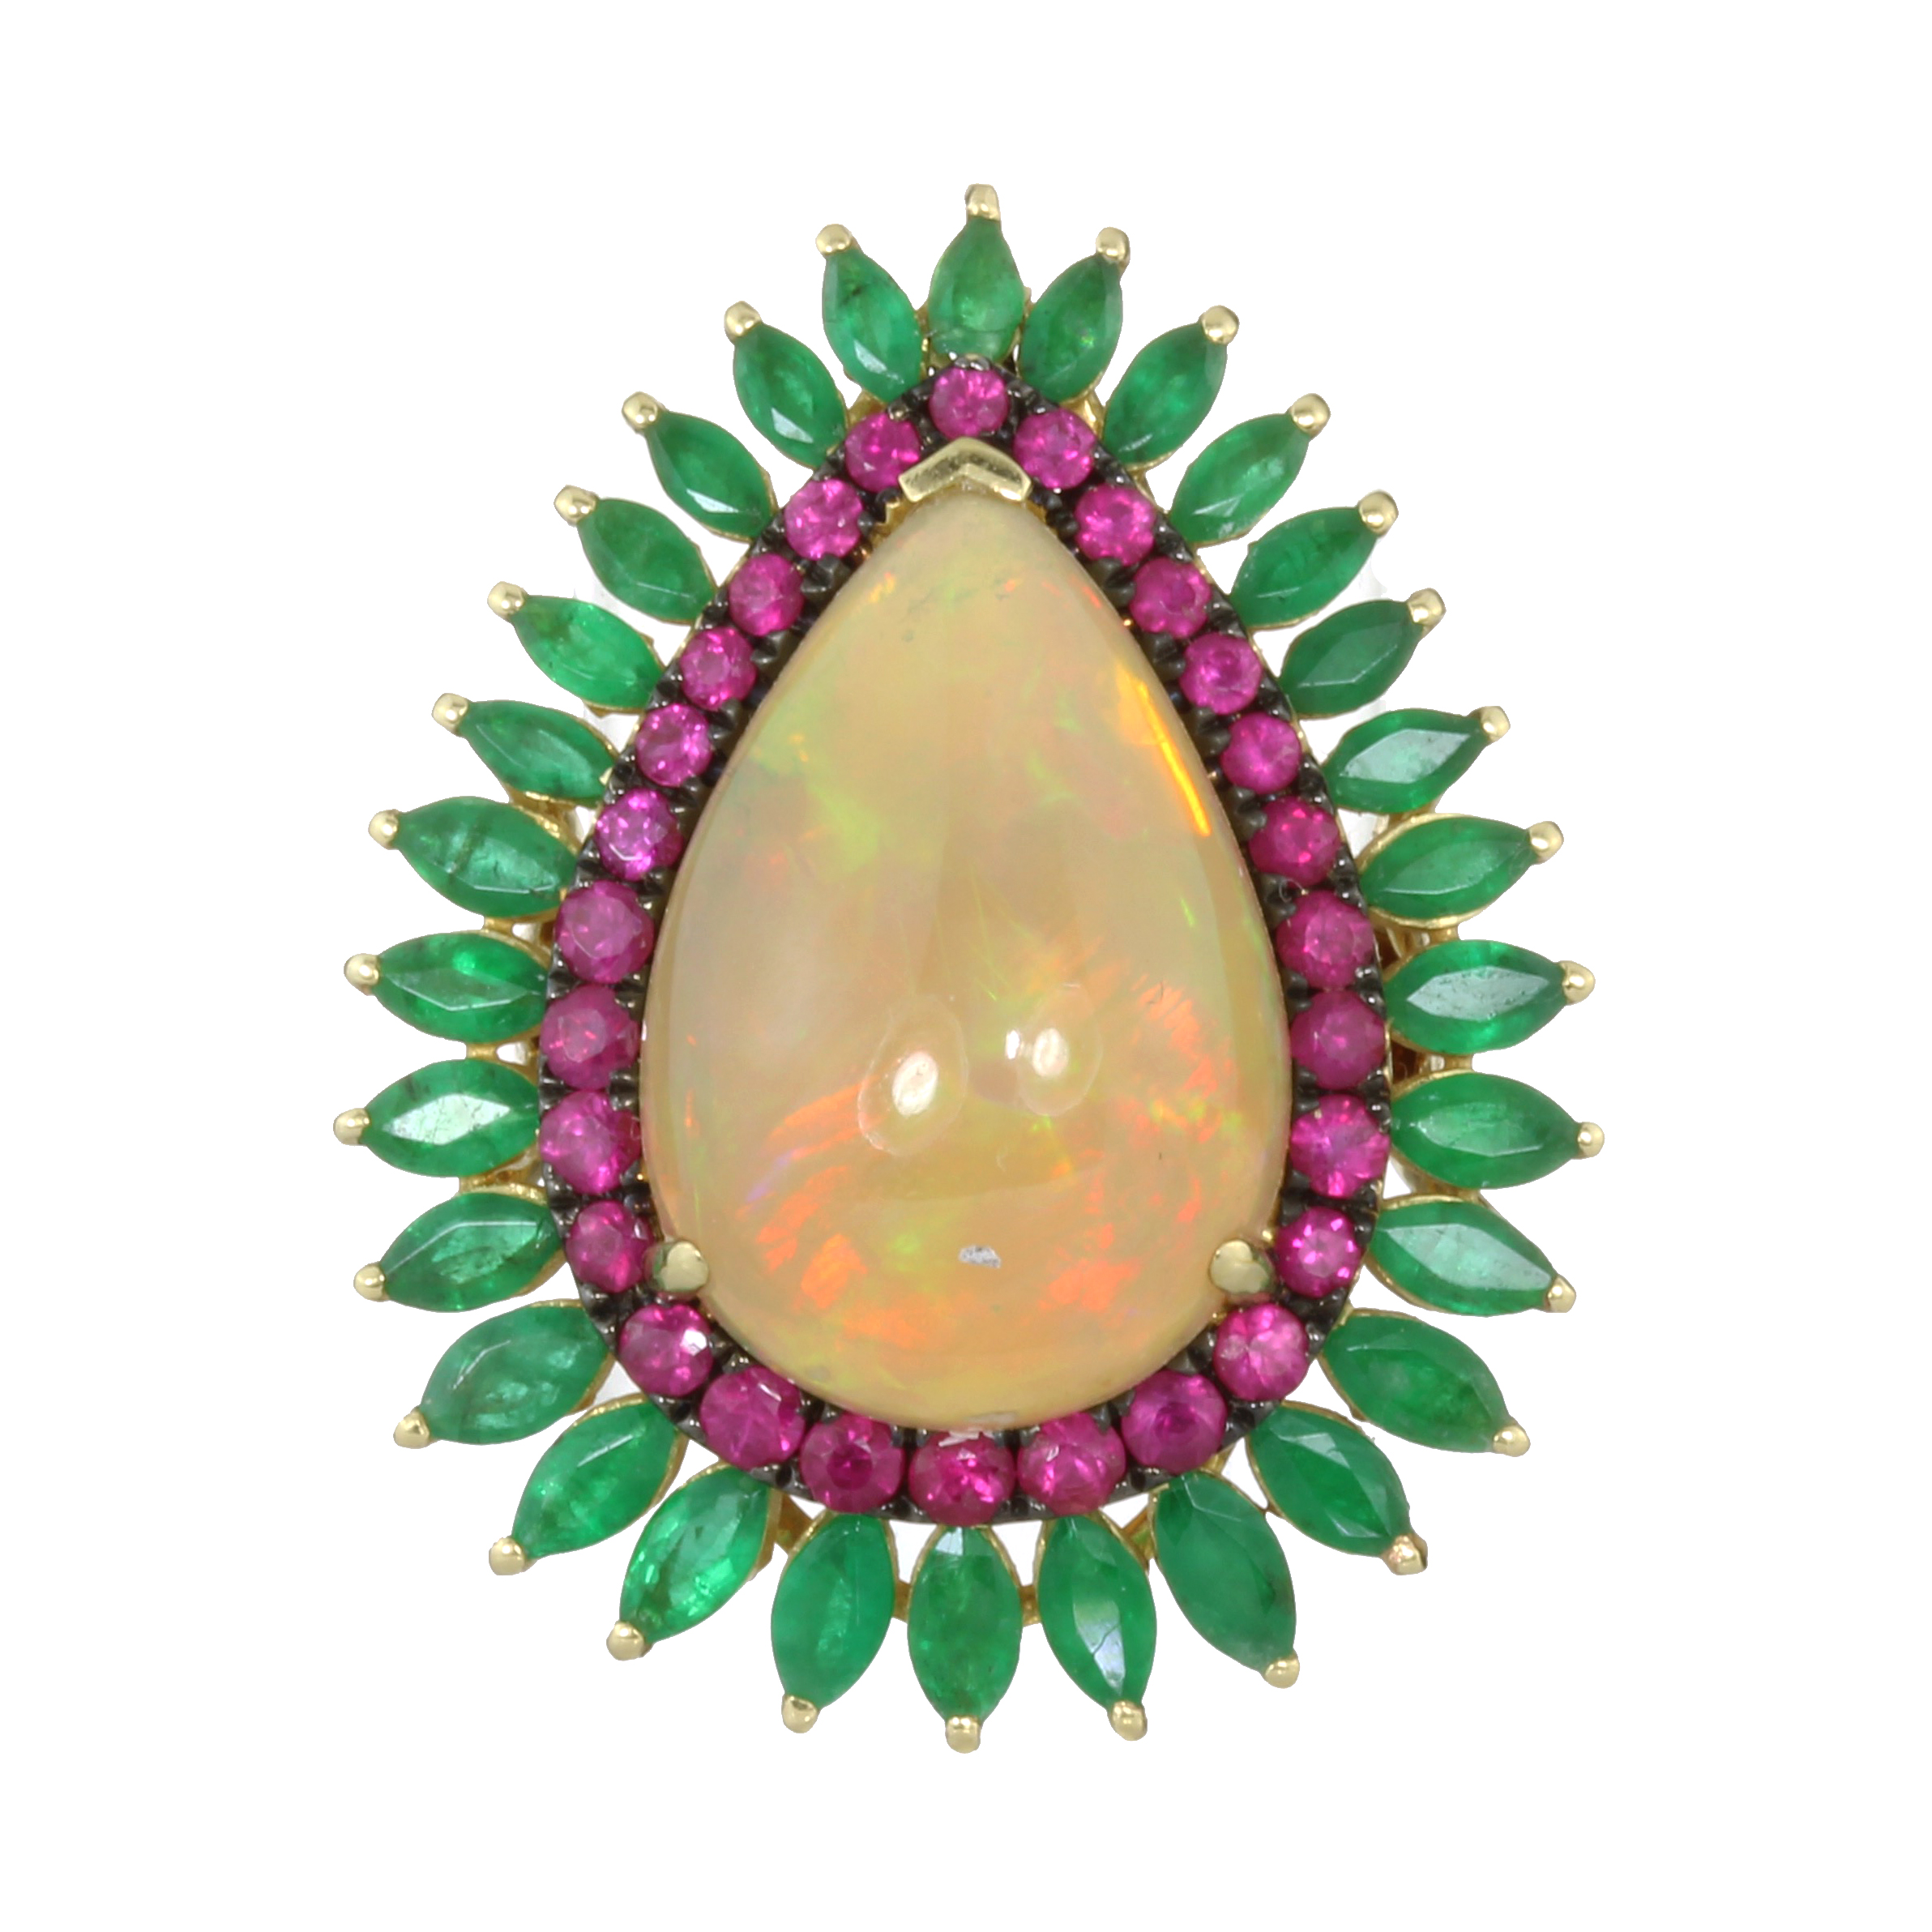 Los 24 - AN ETHIOPIAN OPAL, RUBY AND EMERALD COCKTAIL RING in 18ct yellow gold set with a large, central pear